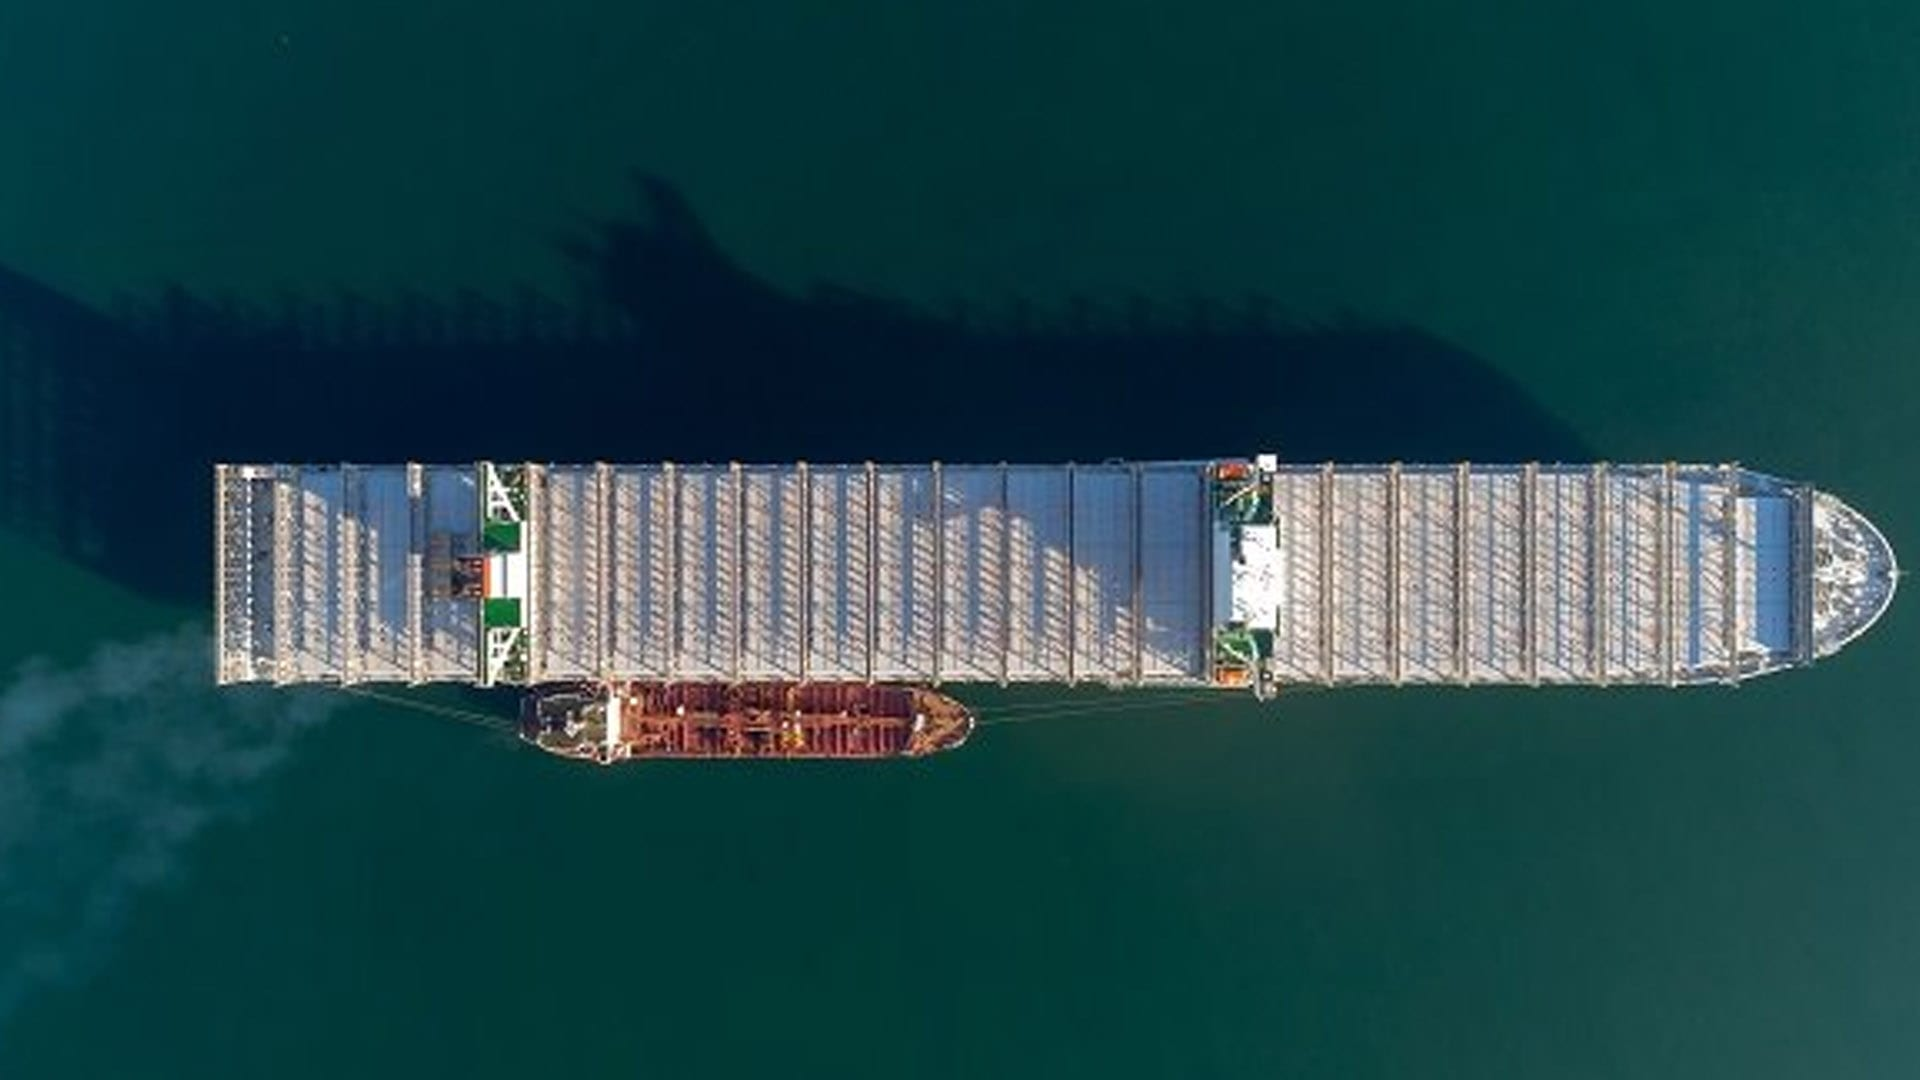 GP Global Delivers 1st IMO 2020 Compliant Fuel in Fujairah